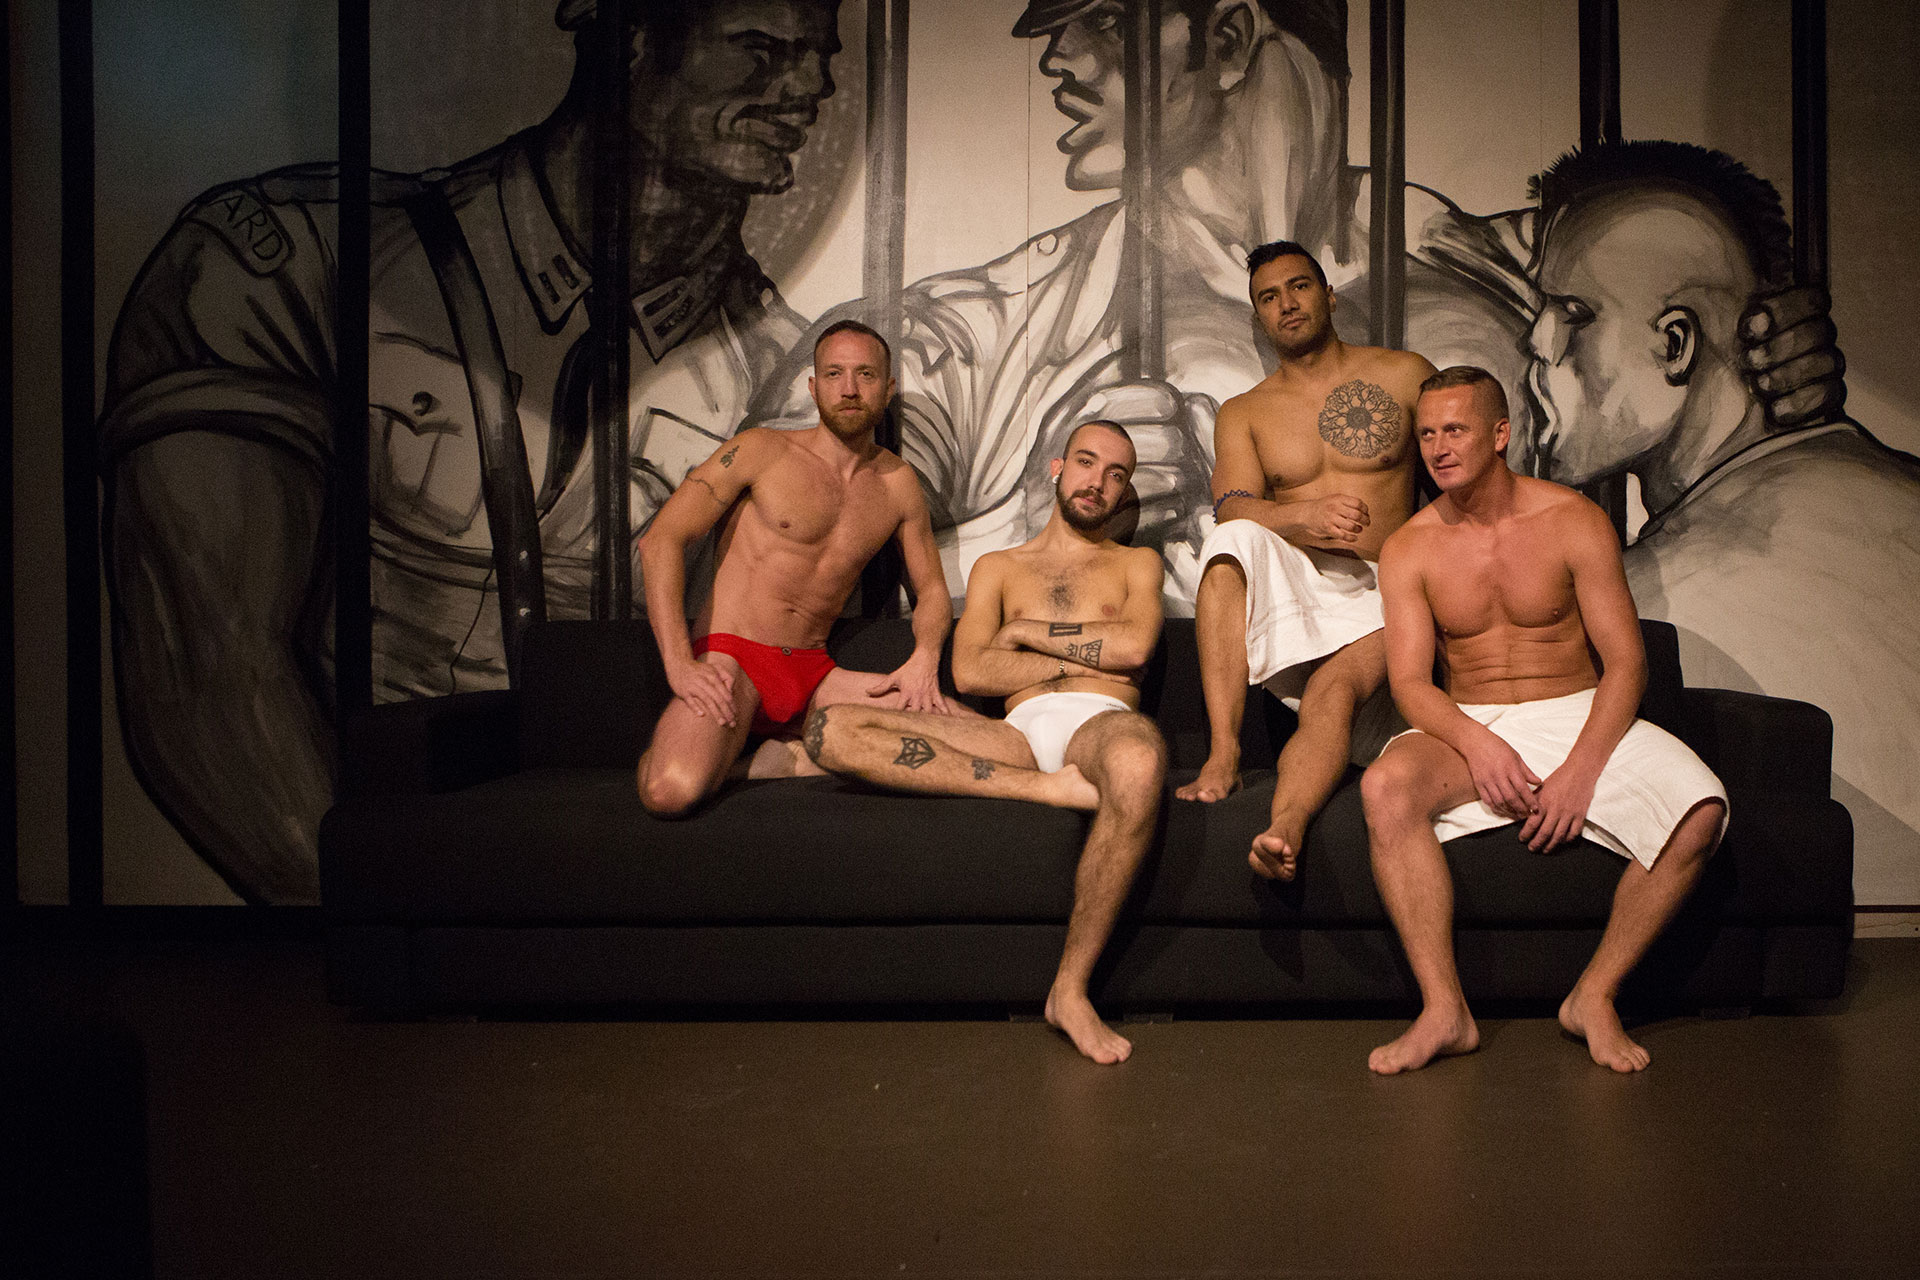 Gay escorts in aberdeen offering male services